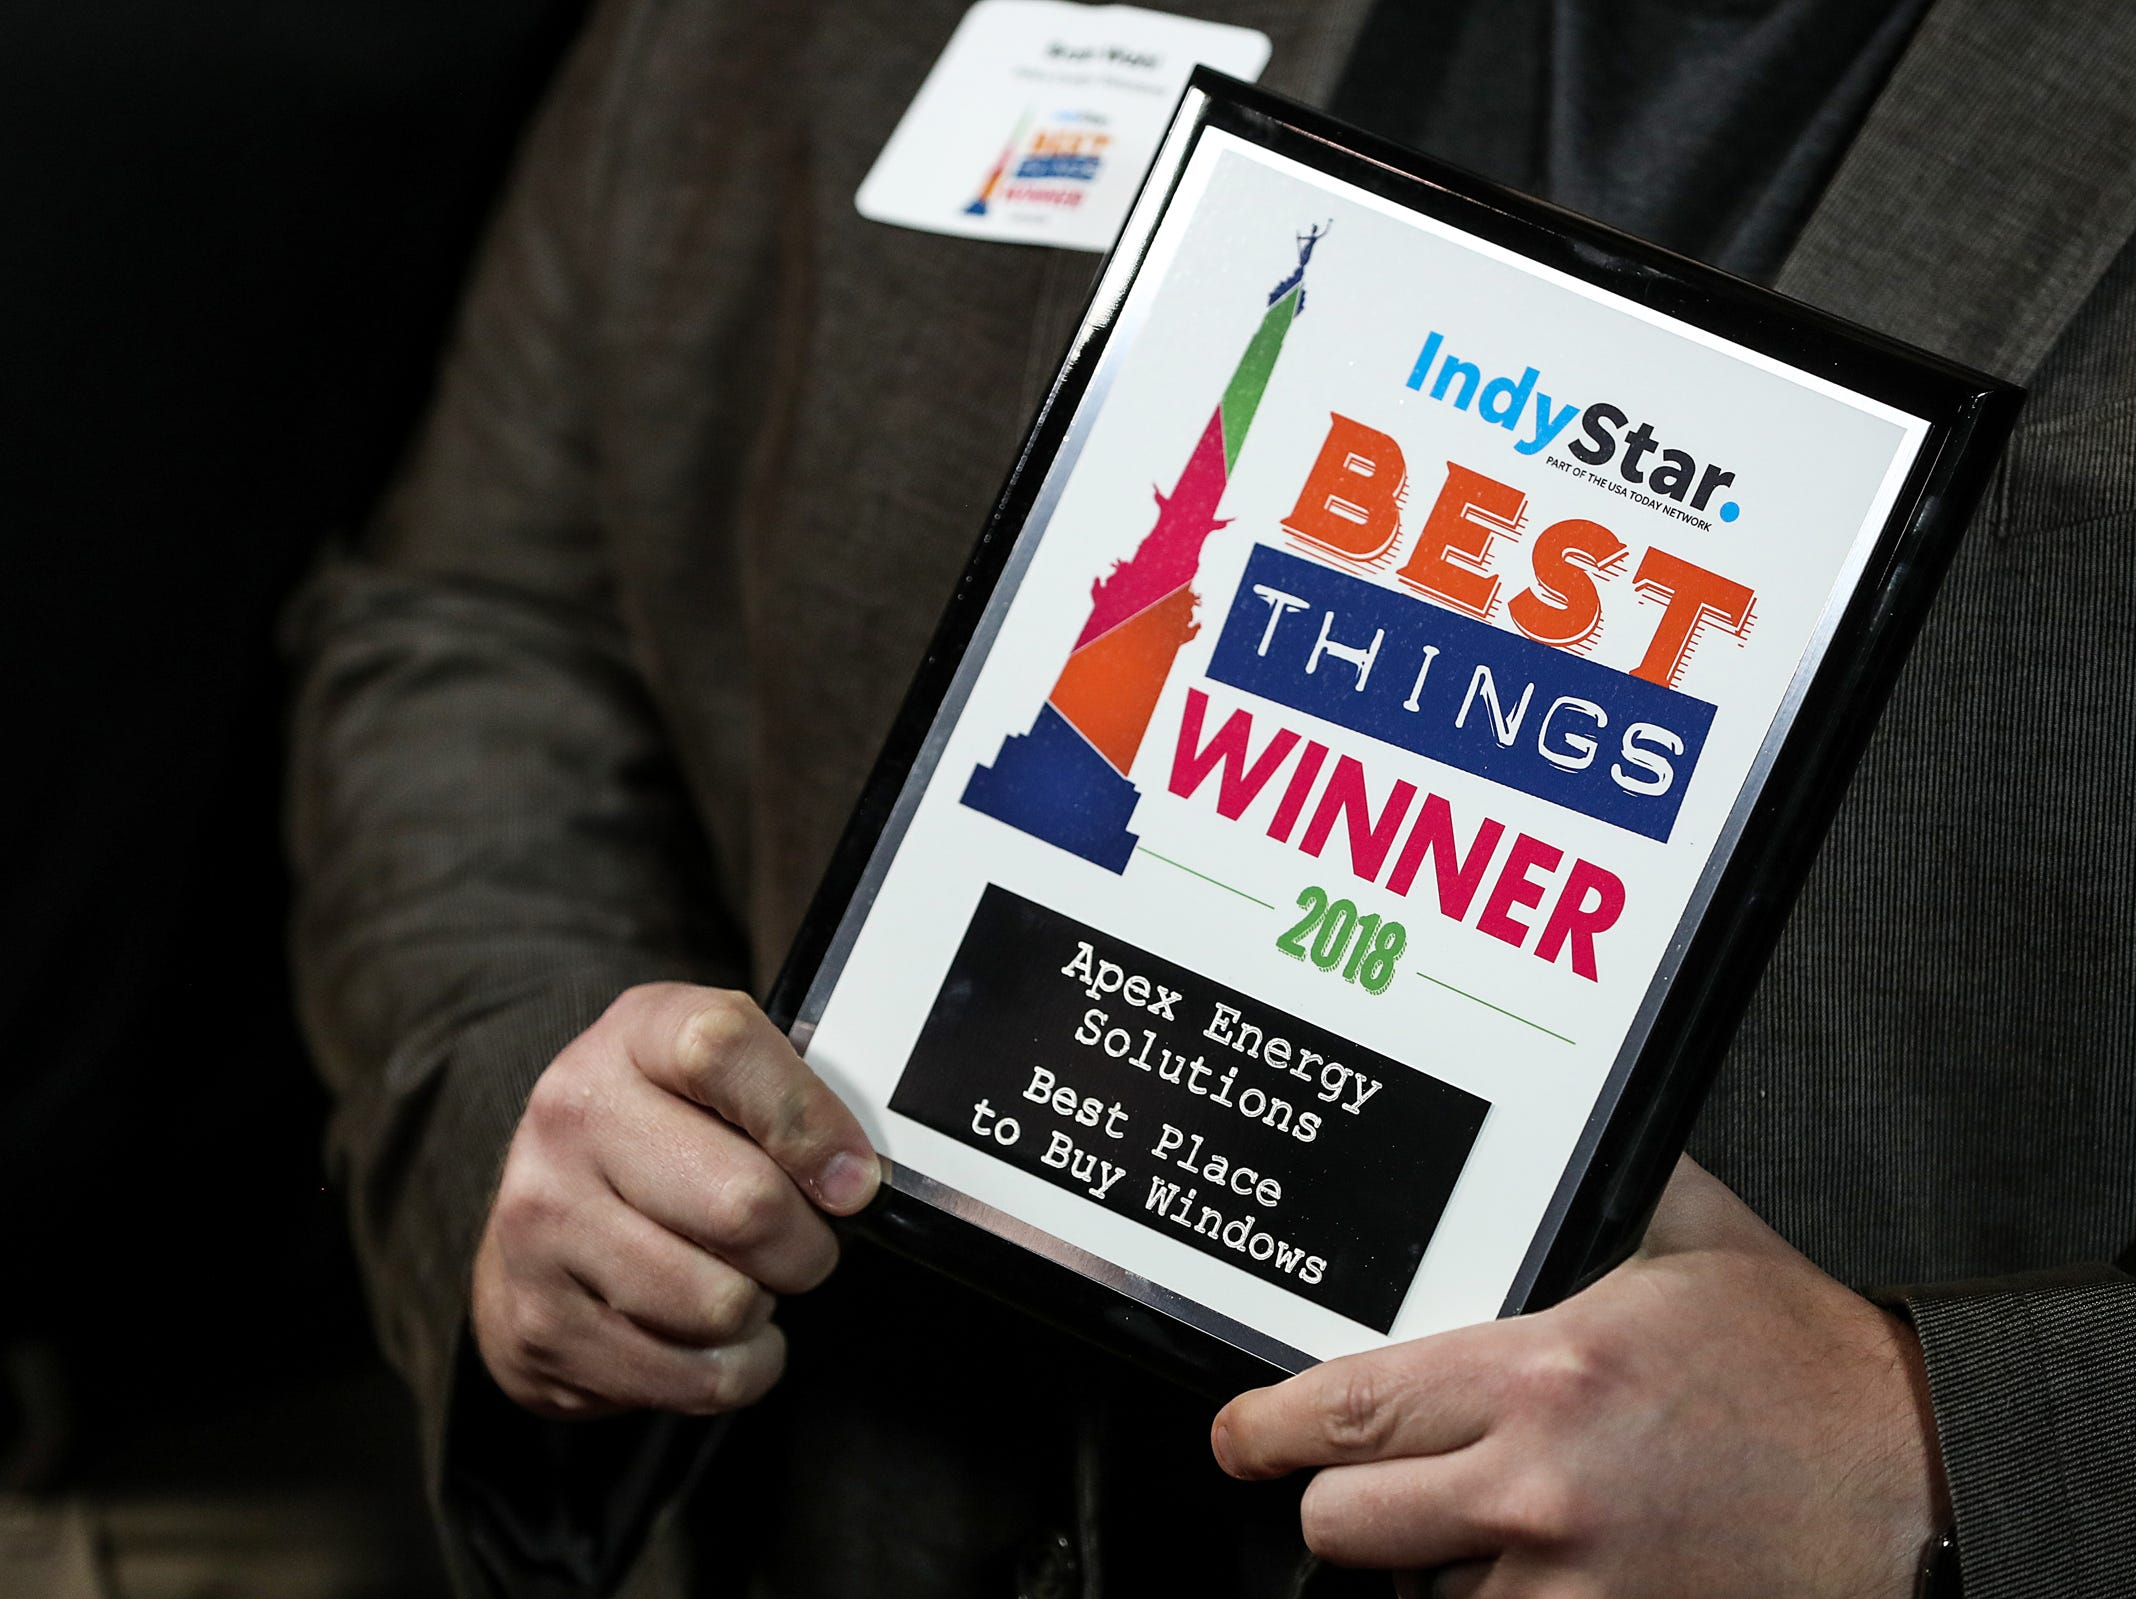 Apex Energy Solutions celebrates the win for best place to buy windows during the inaugural Best Things Indy 2018 award ceremony, held by IndyStar at One America Tower in Indianapolis, Thursday, Sept. 27, 2018.